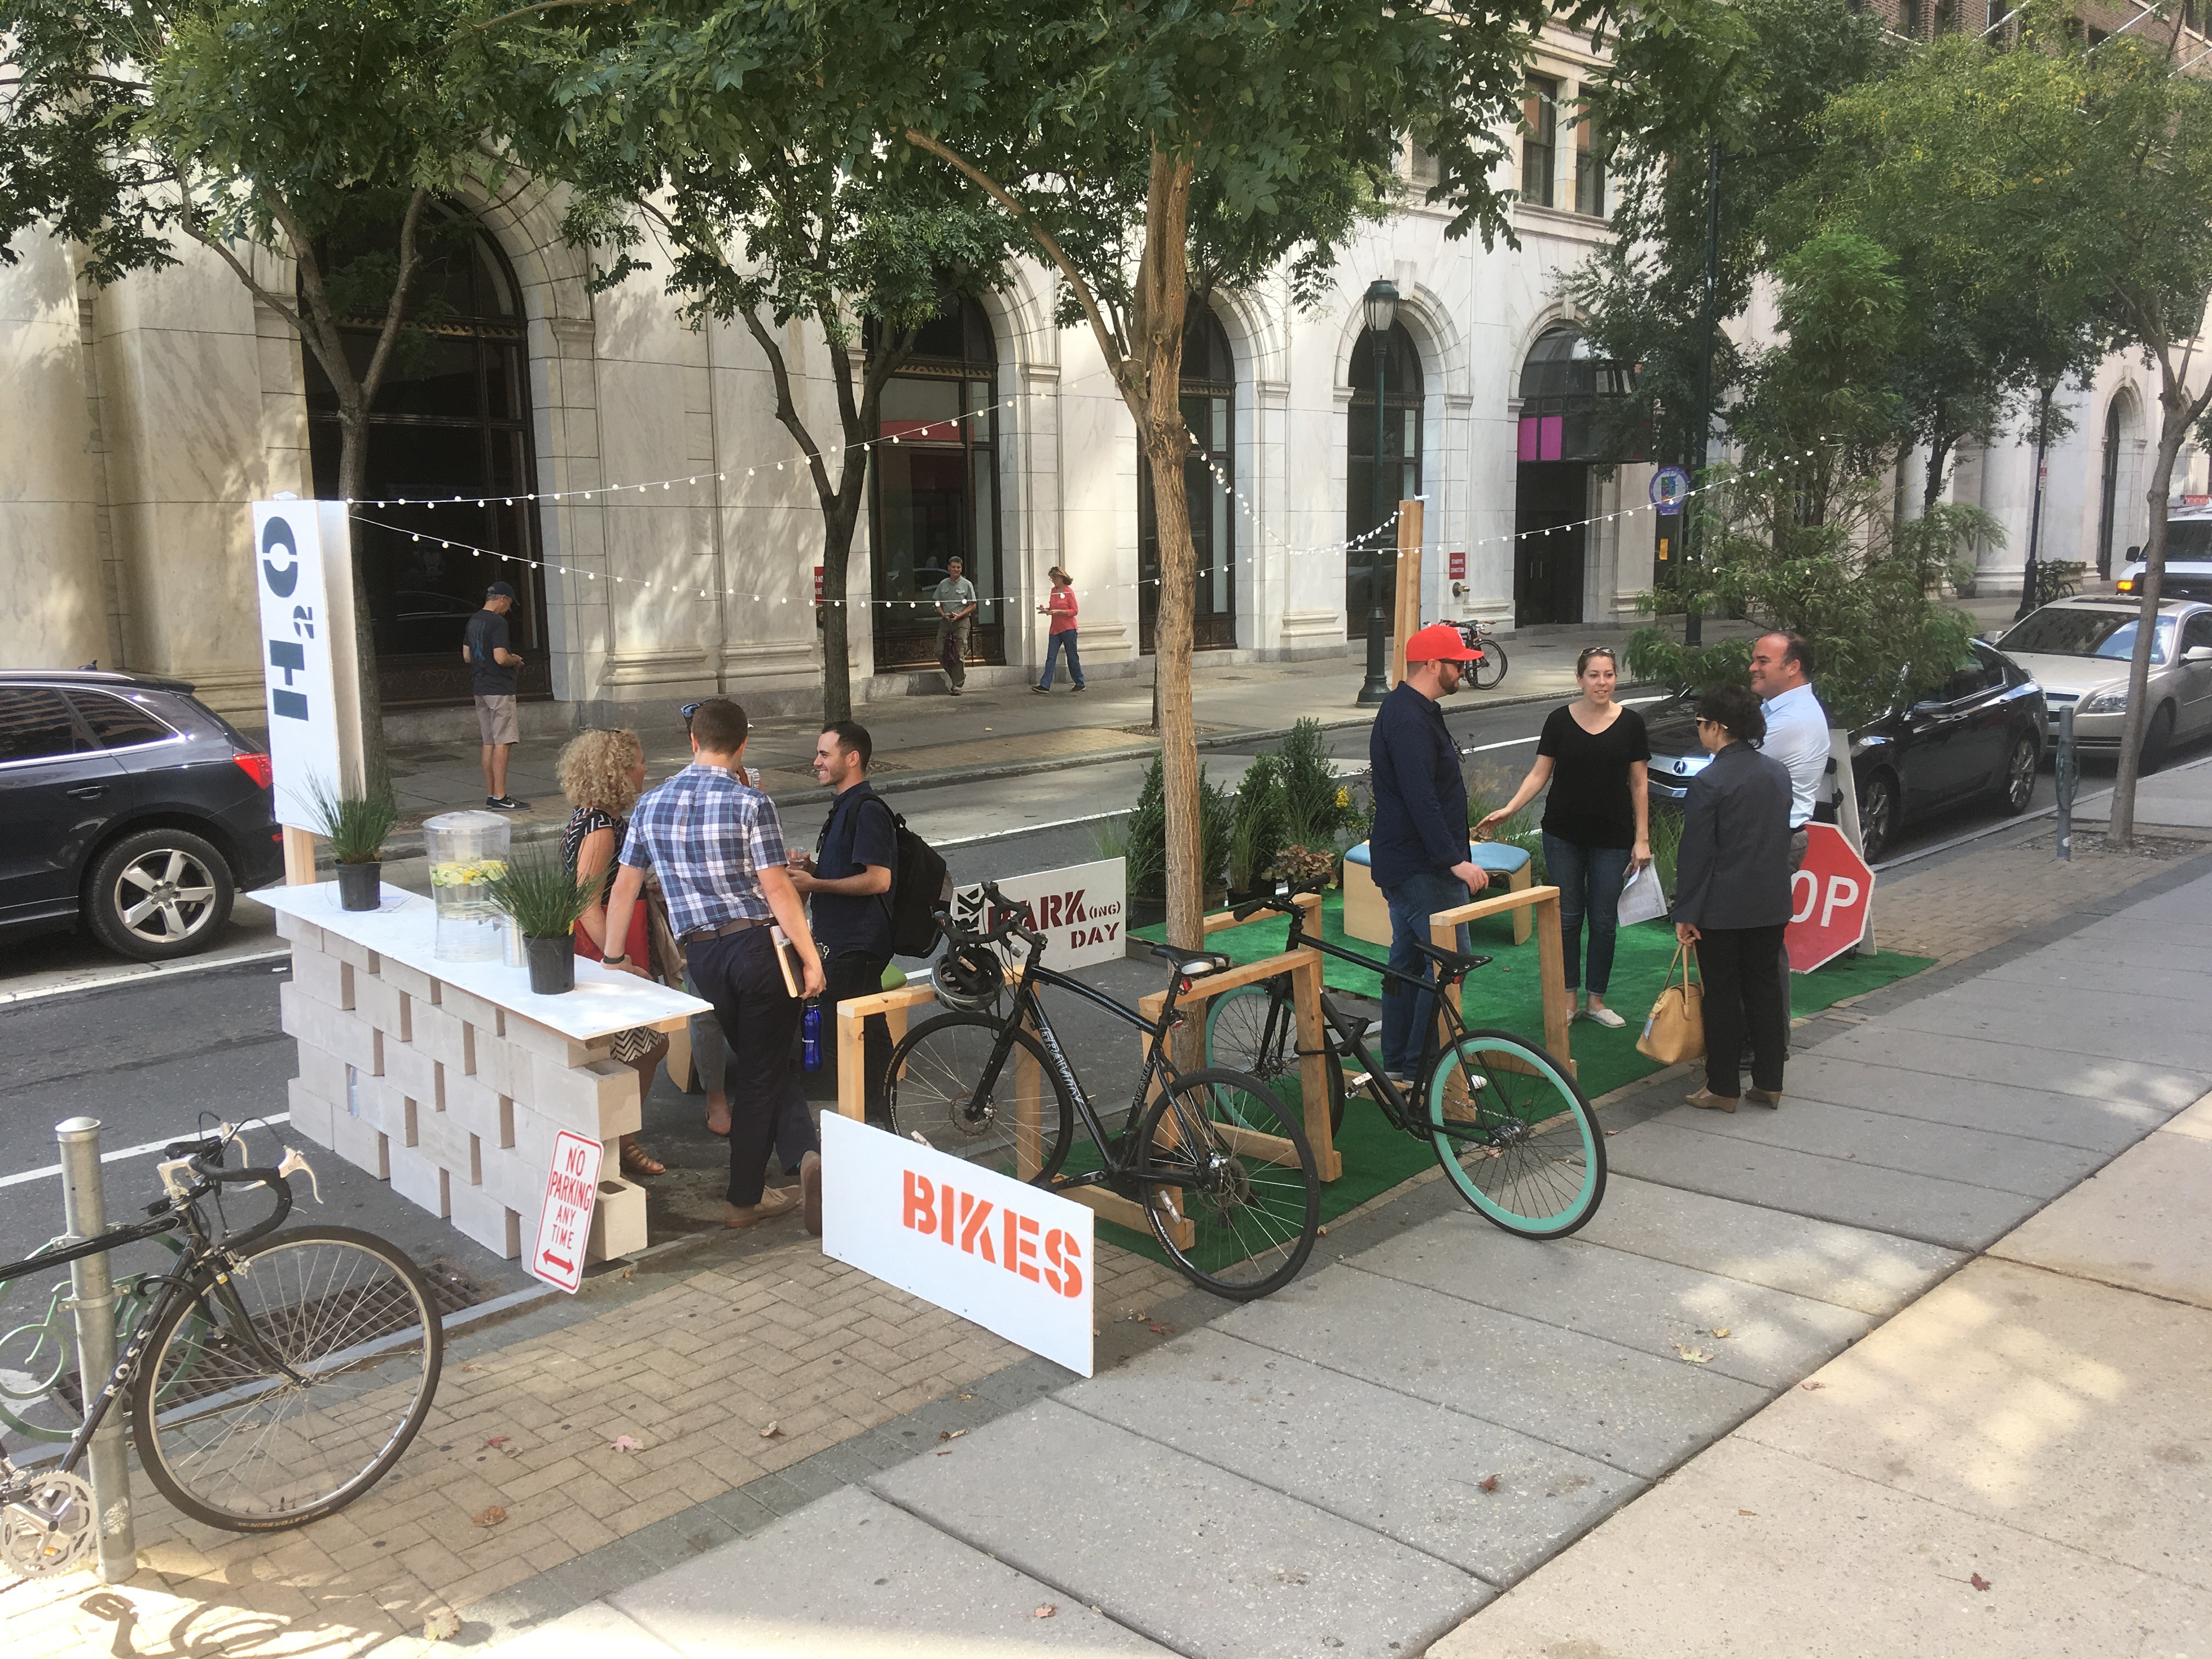 LRK offers lemon scented water and wooden bike racks on Chestnut near 6th